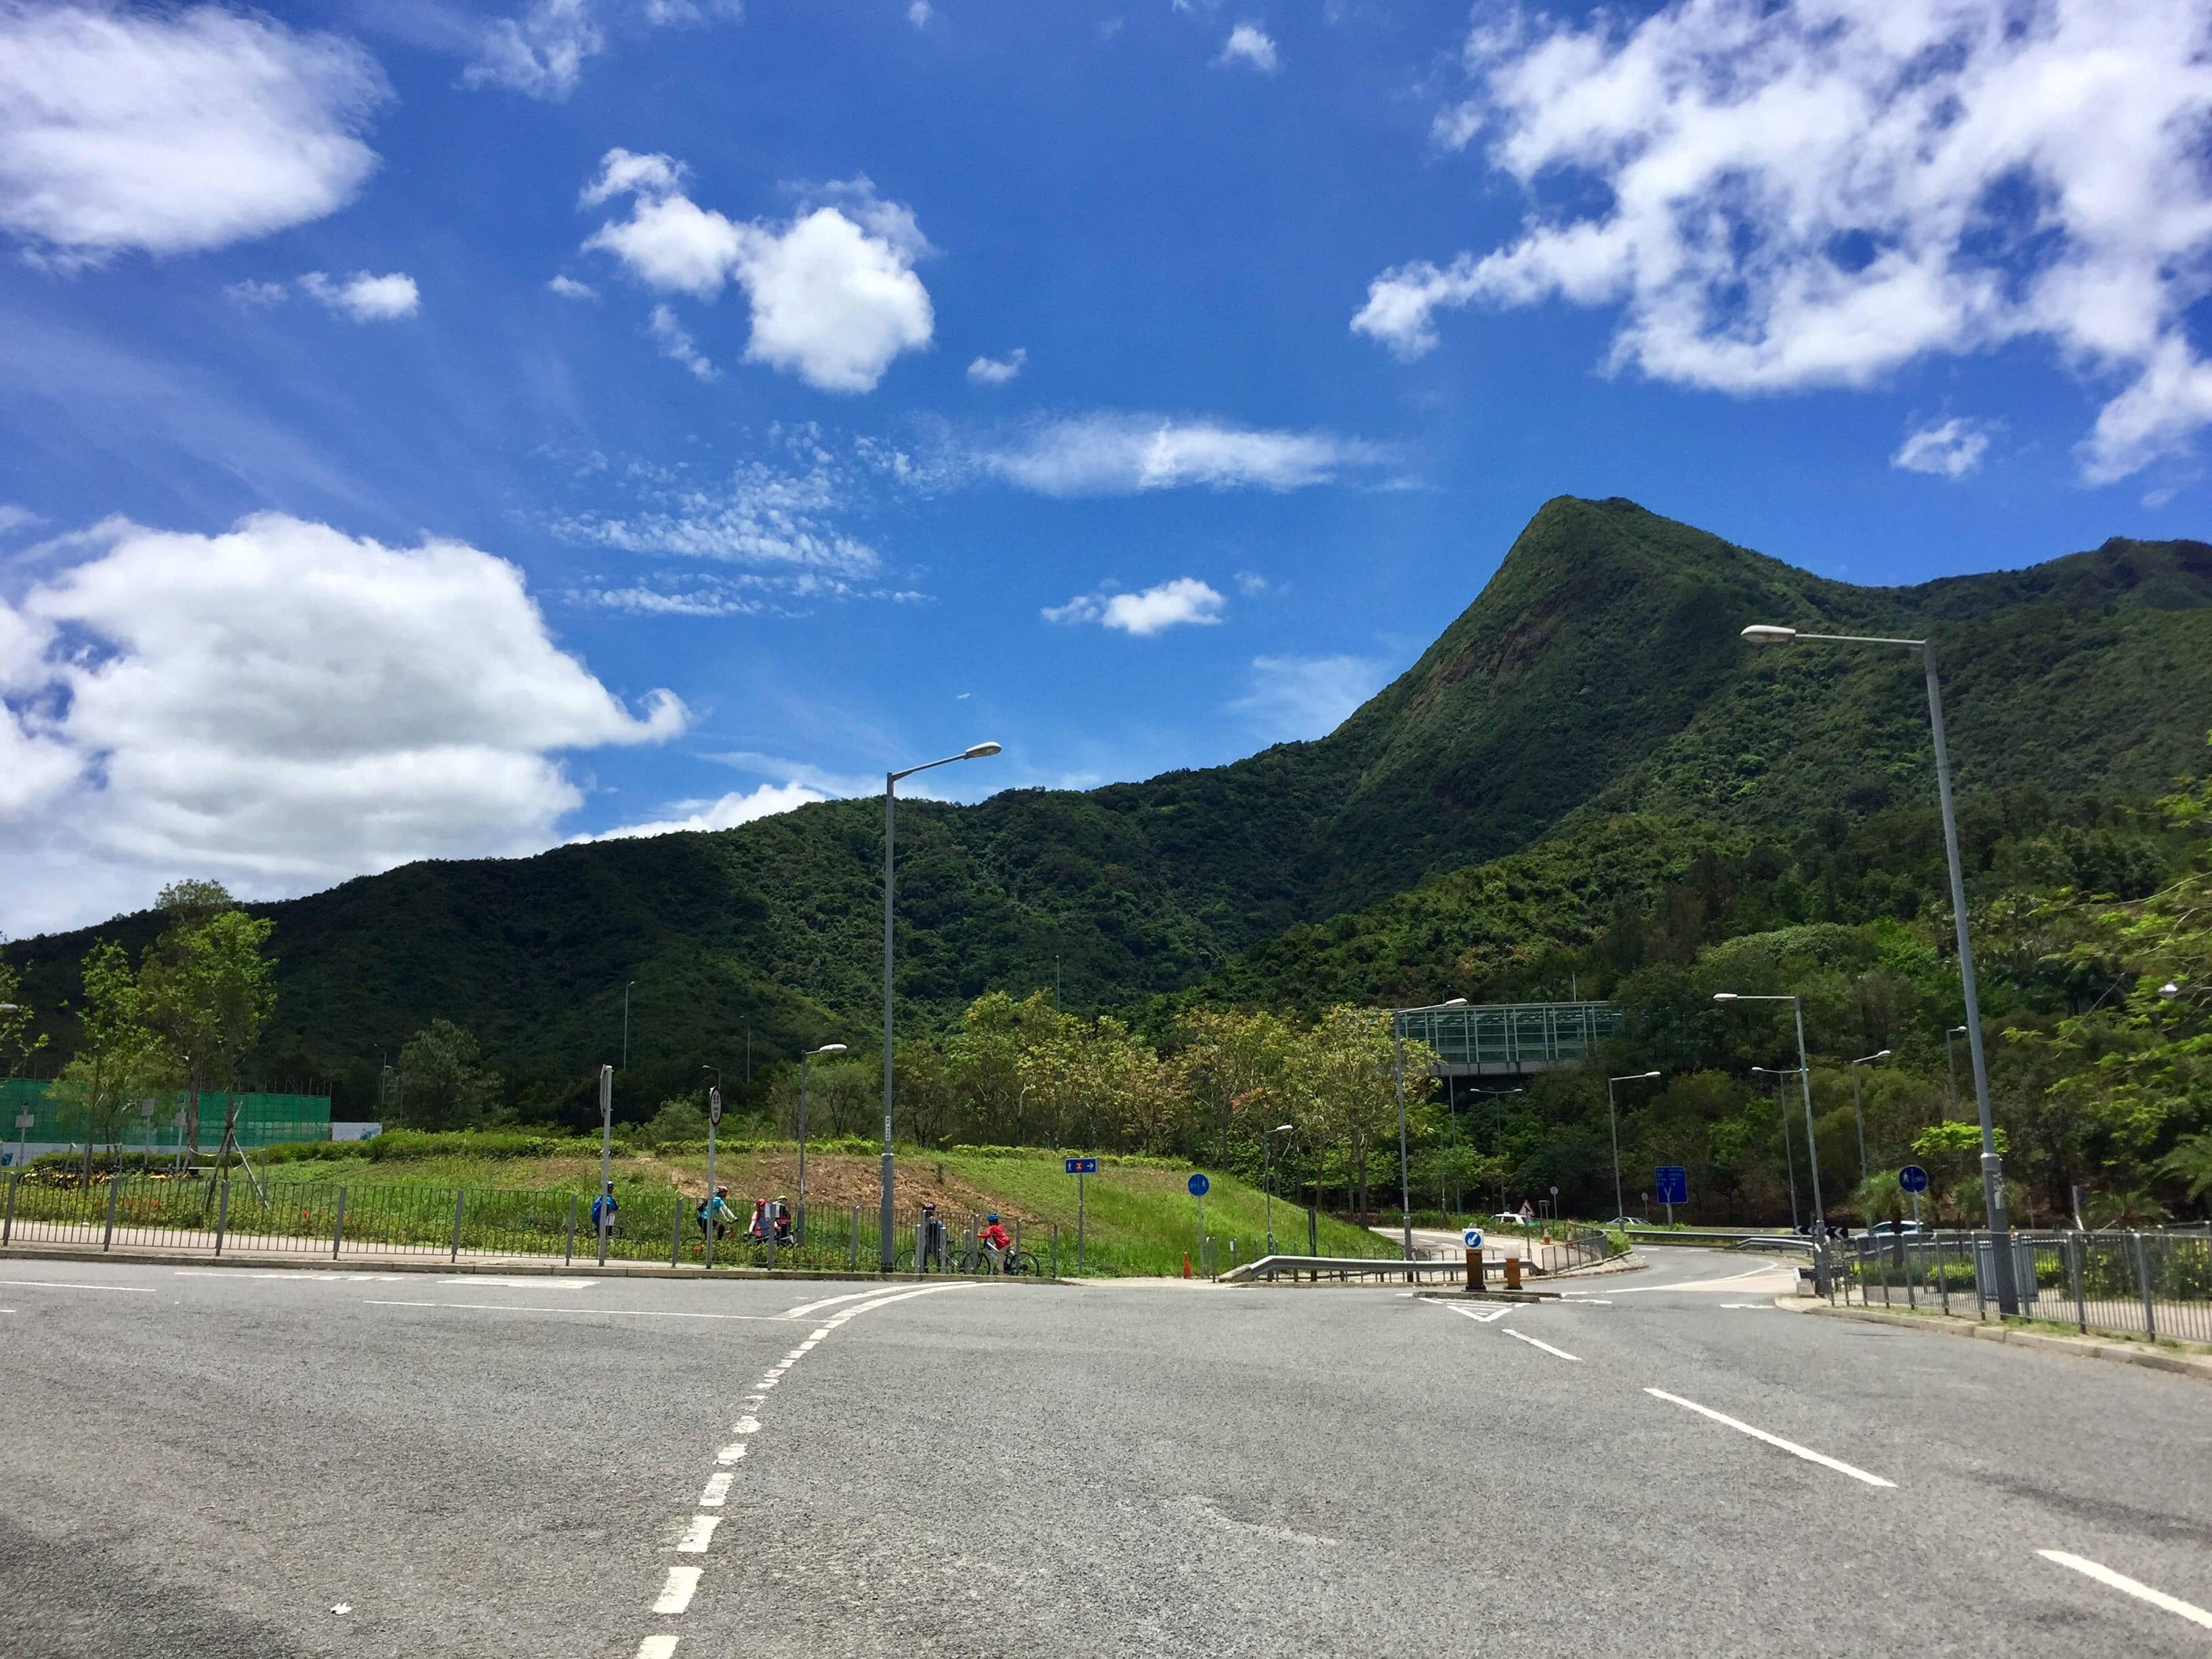 The famous Ma On Shan, the 4th highest peak in Hong Kong